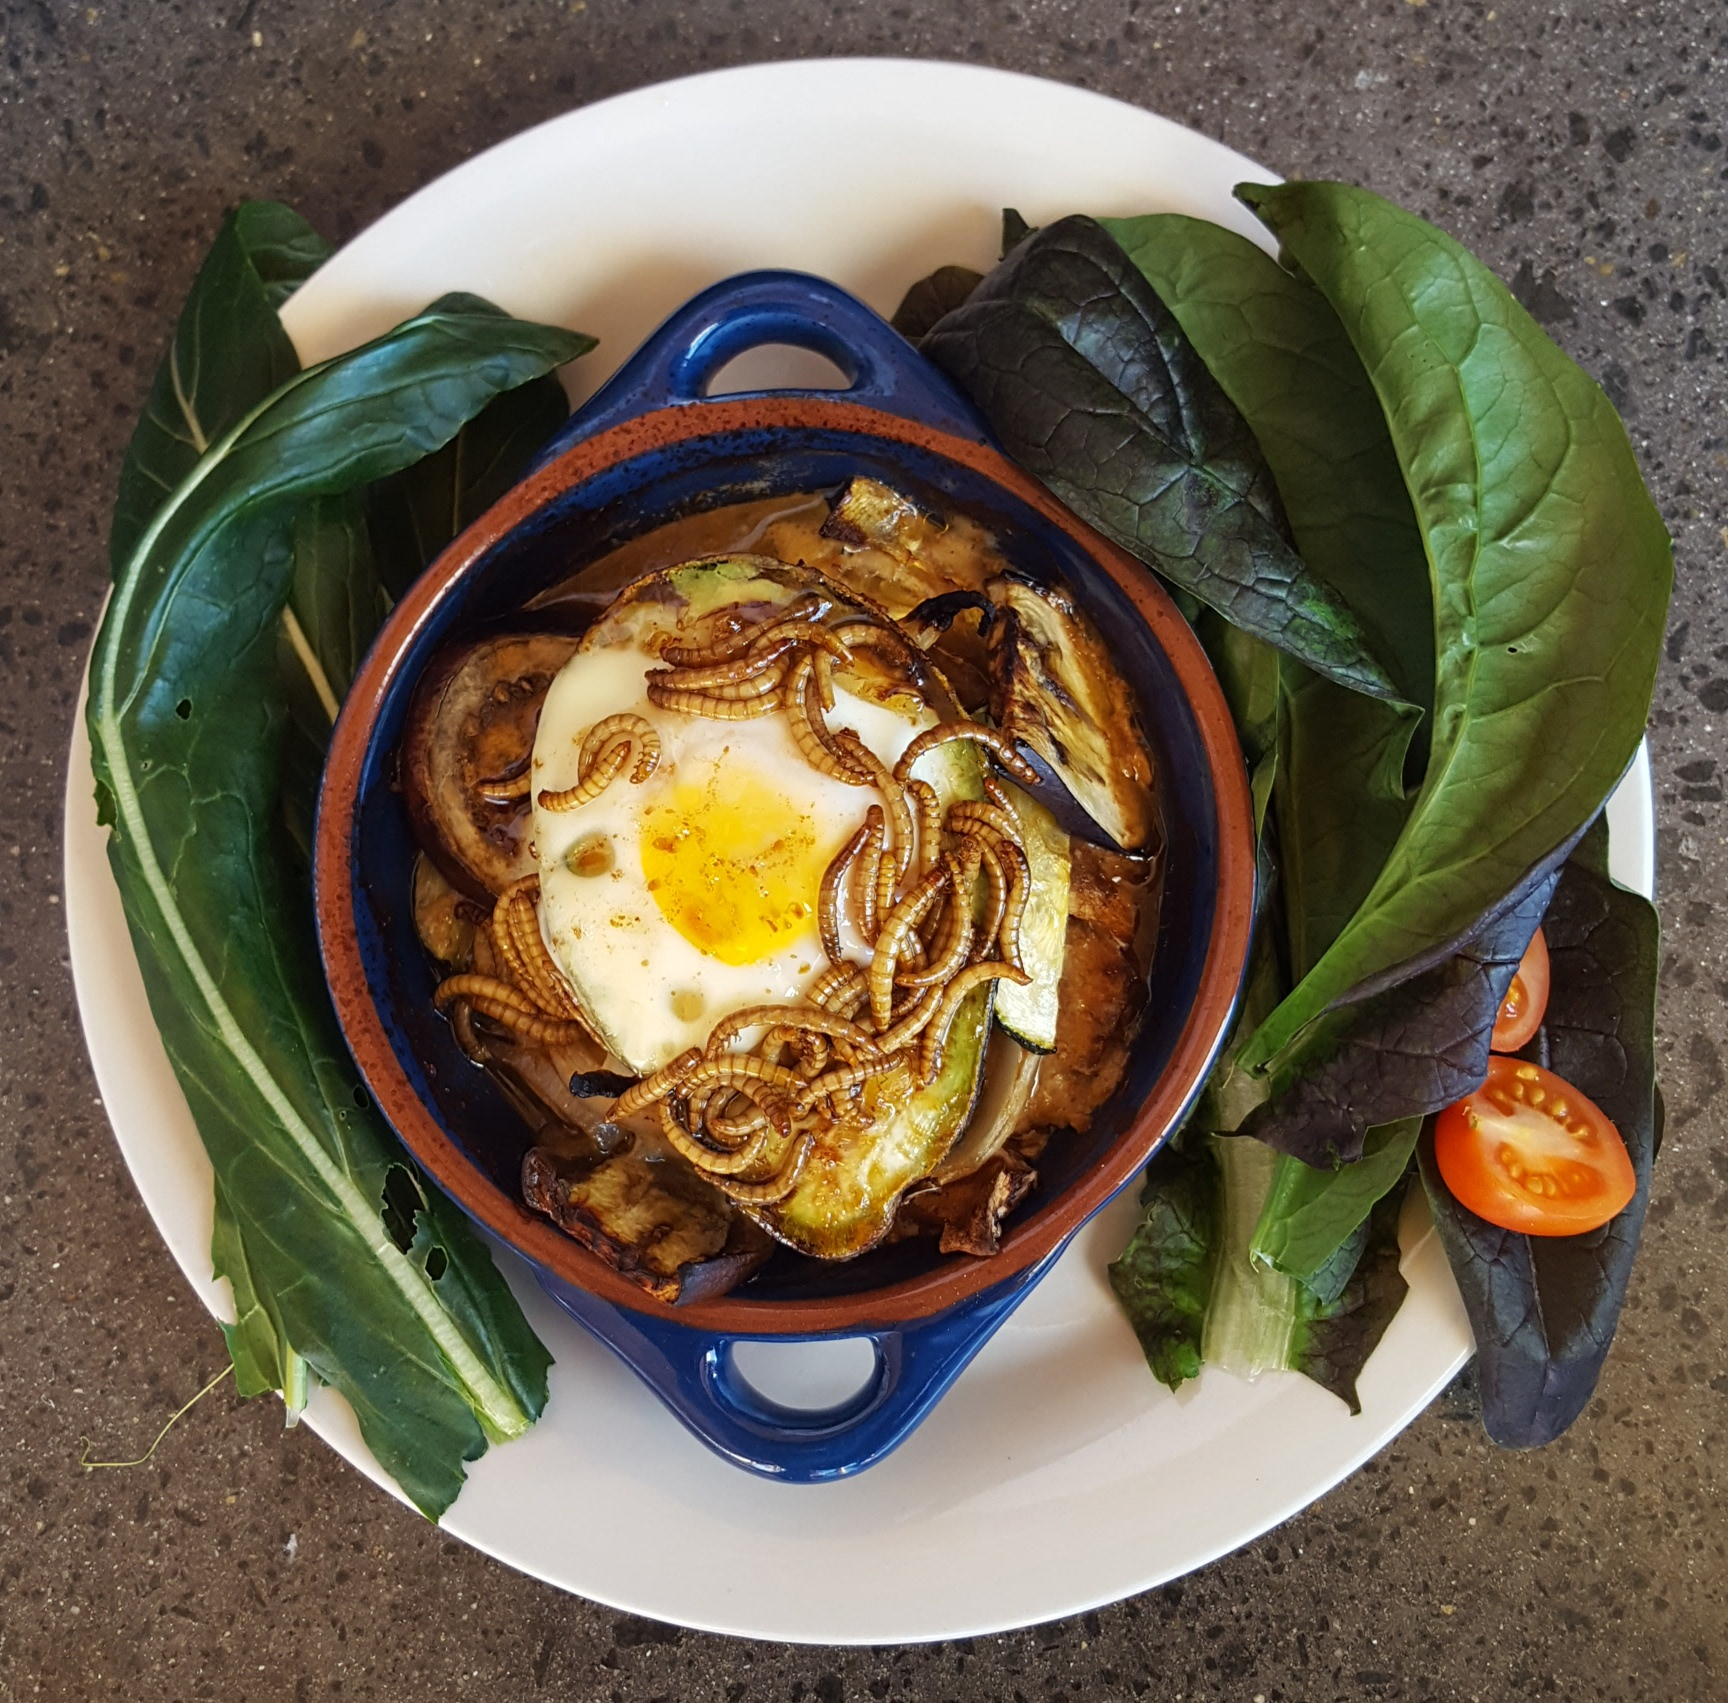 Baked avocado, egg and miso mealworm